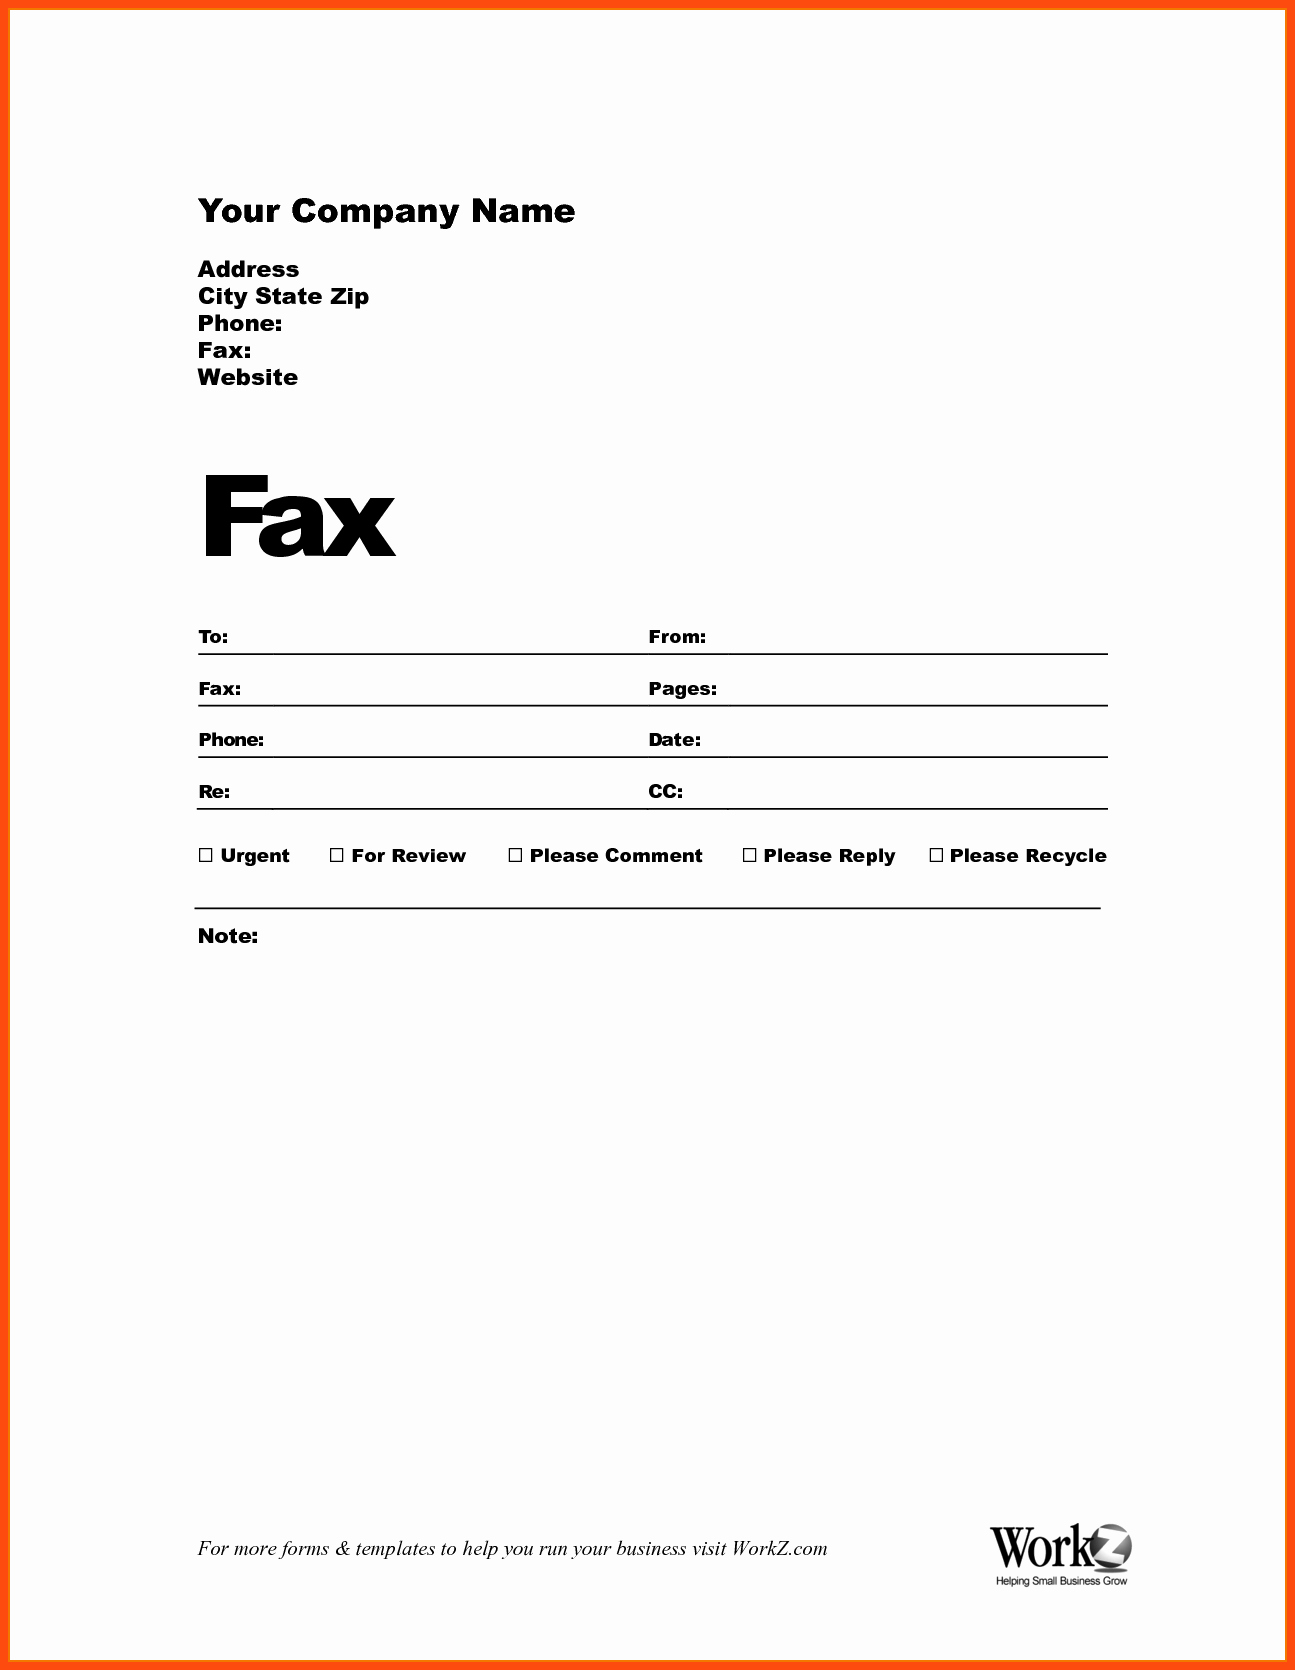 Cover Sheet for A Fax Best Of How to Fill Out A Fax Cover Sheet